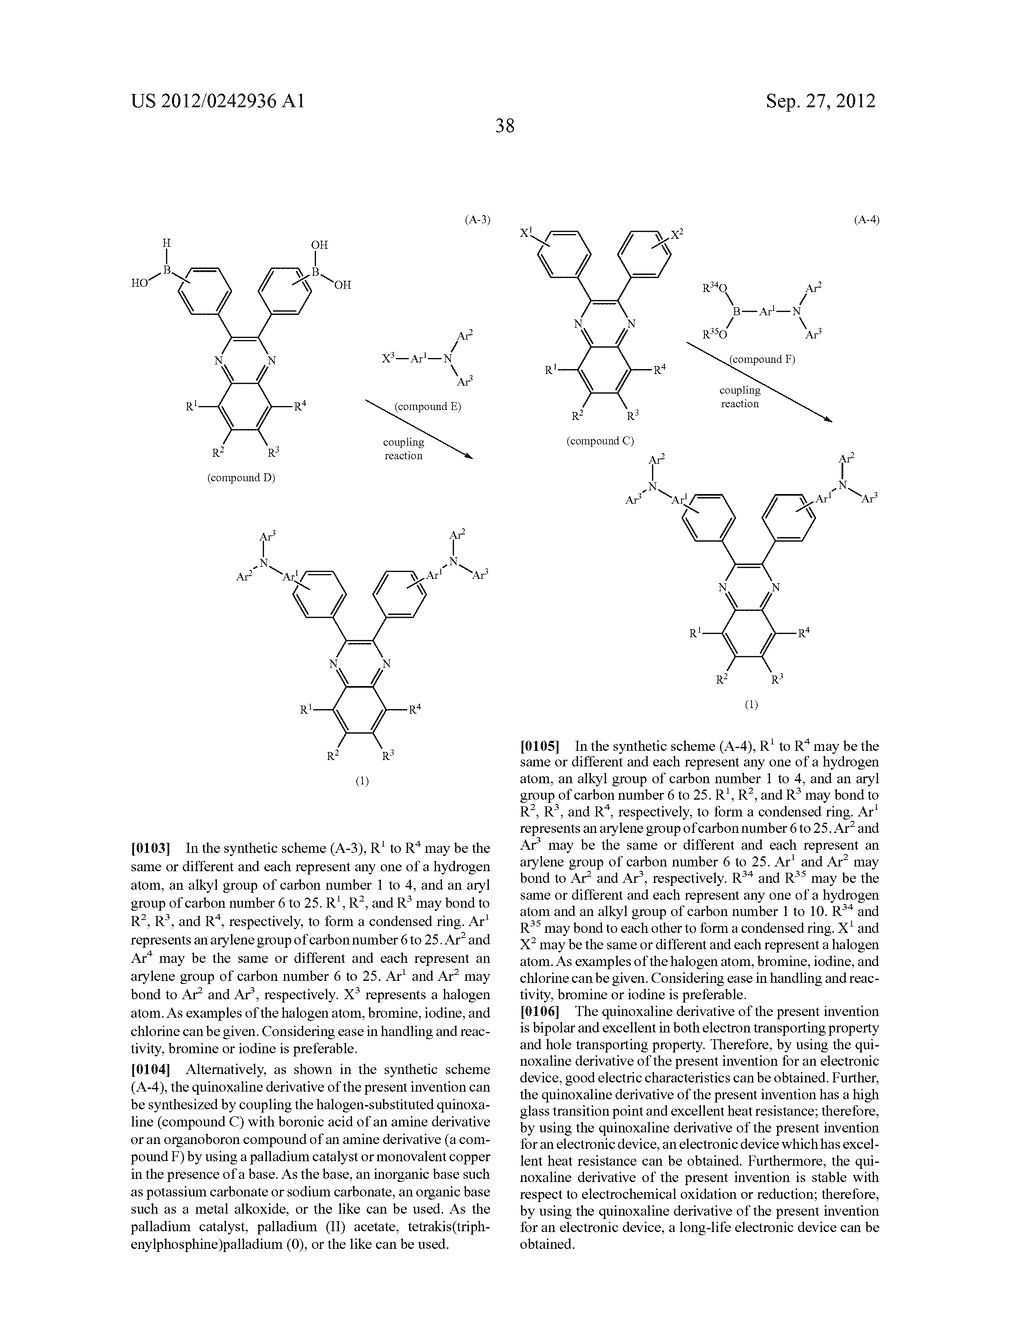 Quinoxaline Derivative, and Light Emitting Element, Light Emitting Device,     and Electronic Device Using the Quinoxaline Derivative - diagram, schematic, and image 74